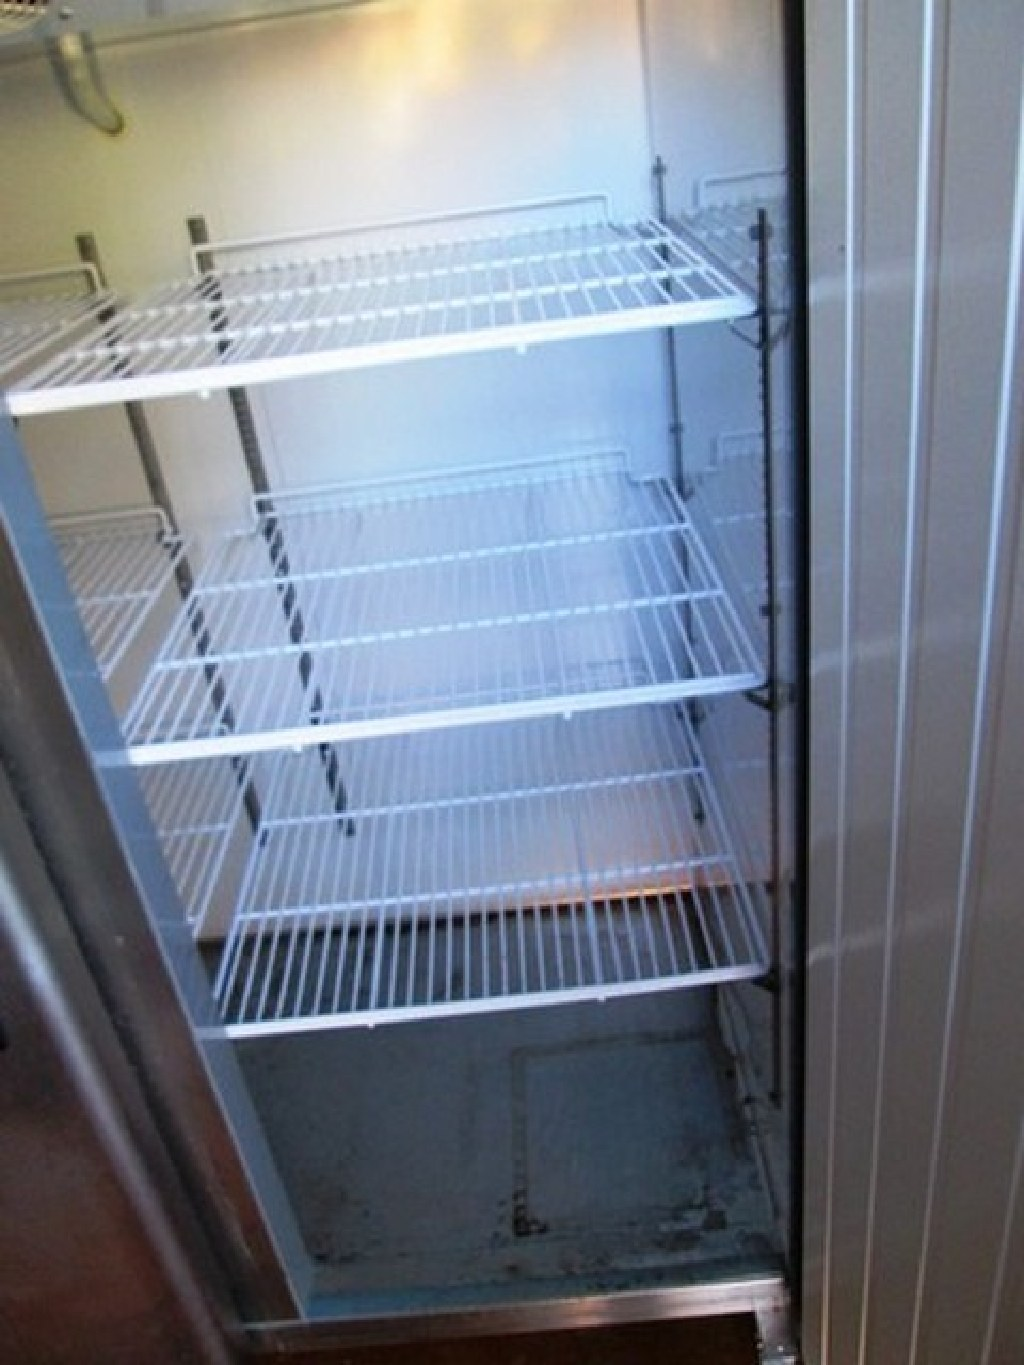 Stainless Steel Reach-In Refrigerater RTR# 7013892-02